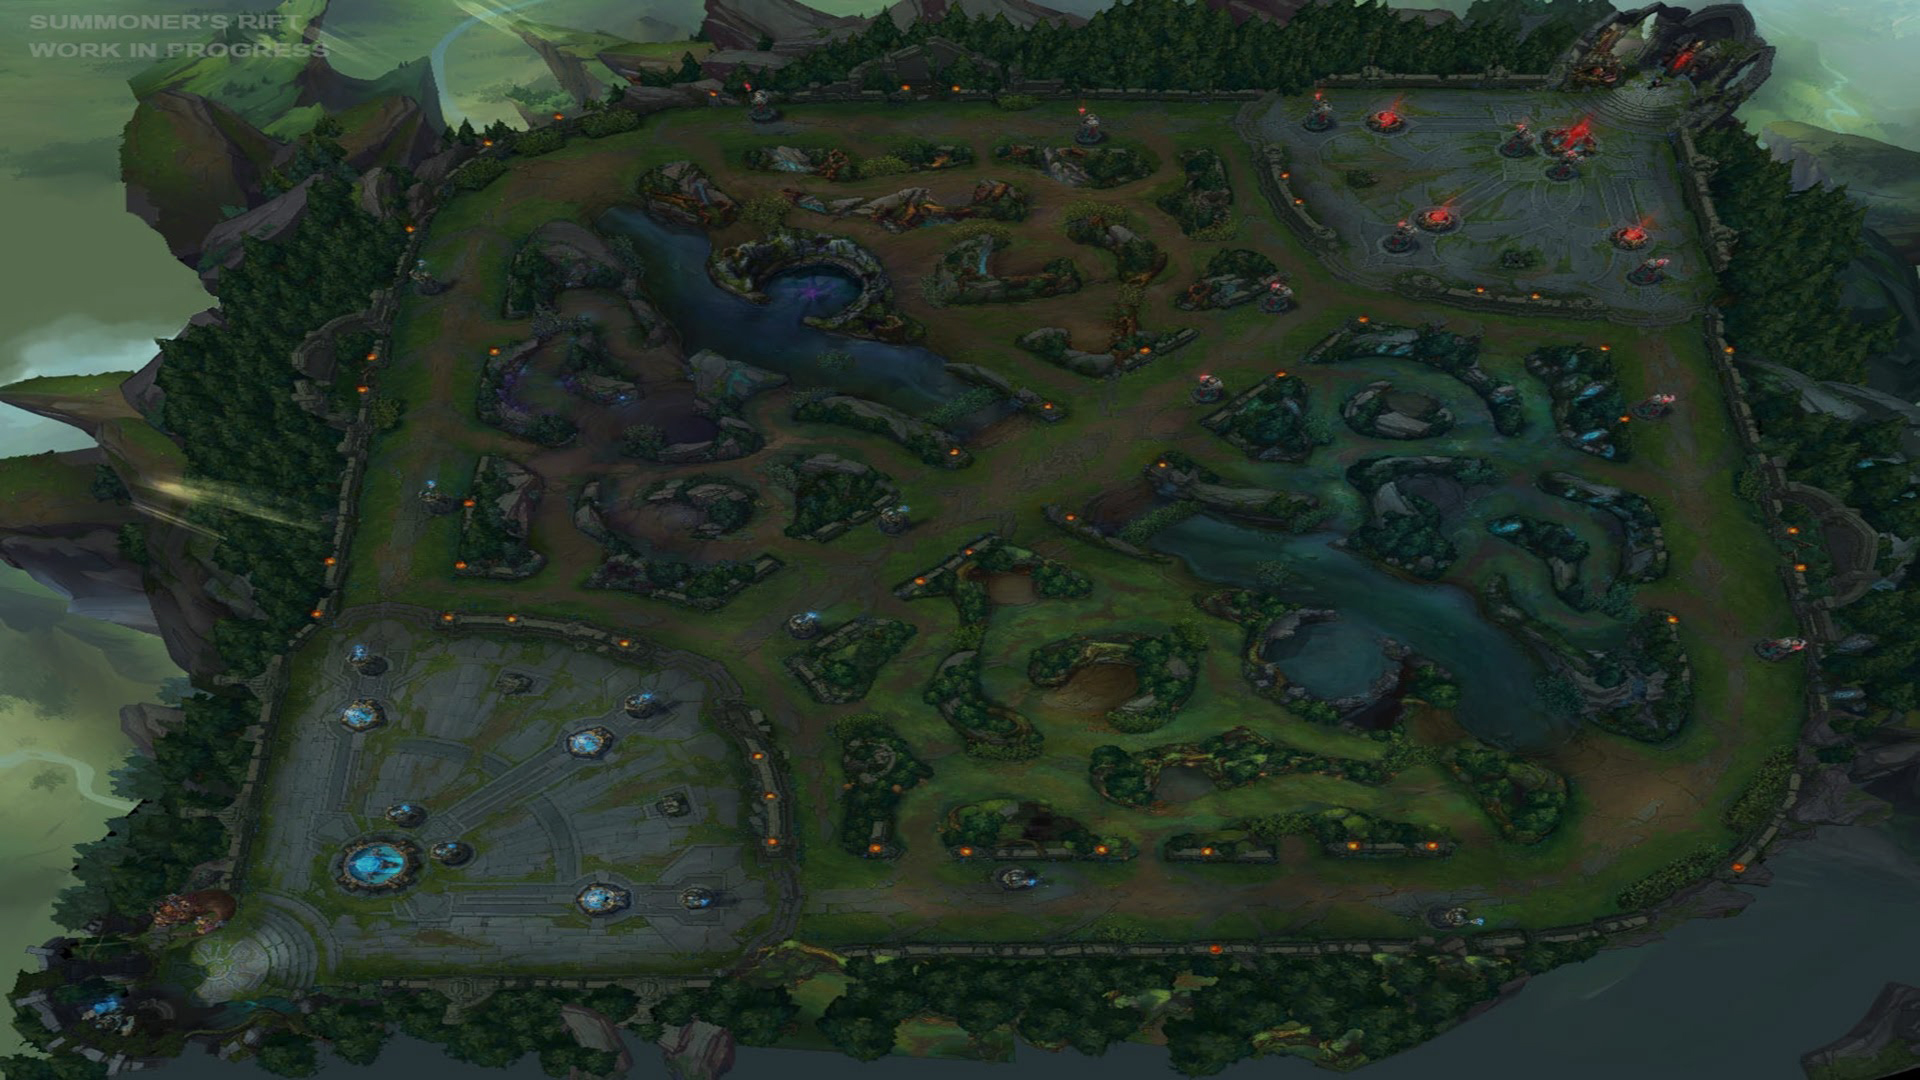 league of legends  tips  mobafanscom  everything about games  - league of legends map